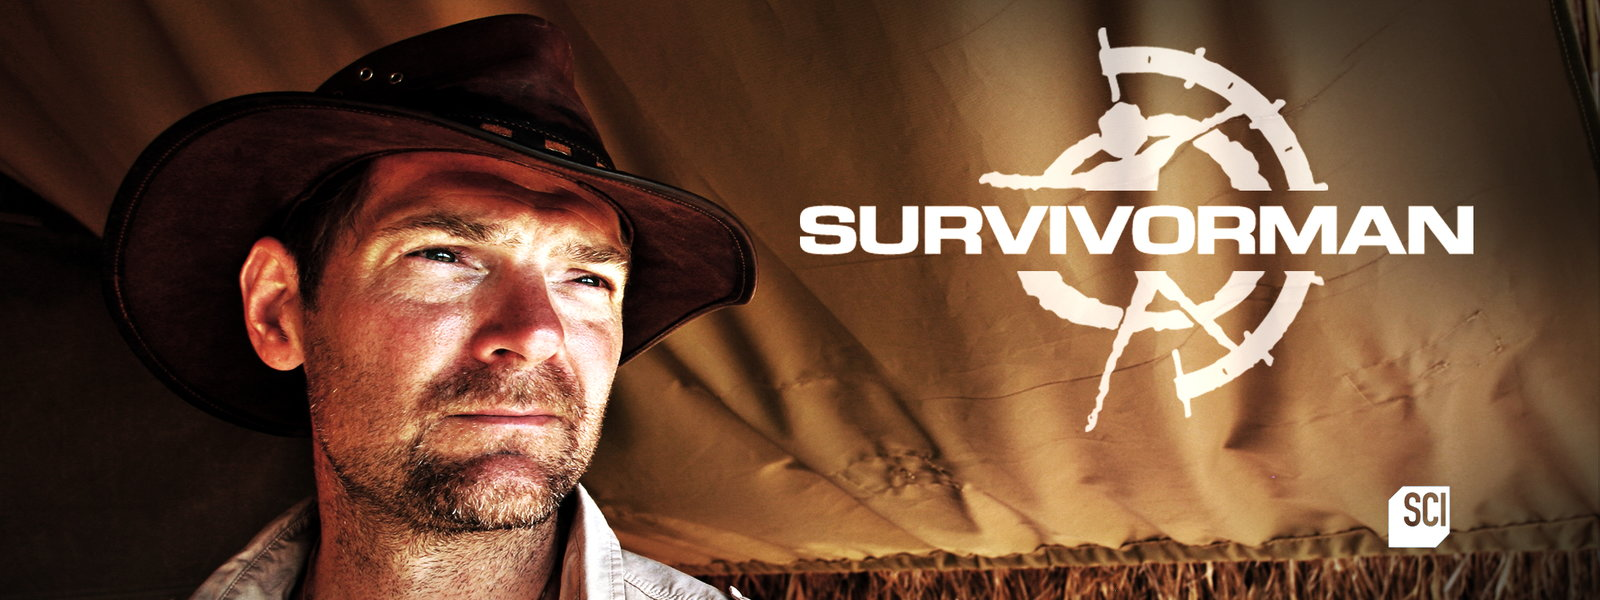 man against wild : SurvivorMan